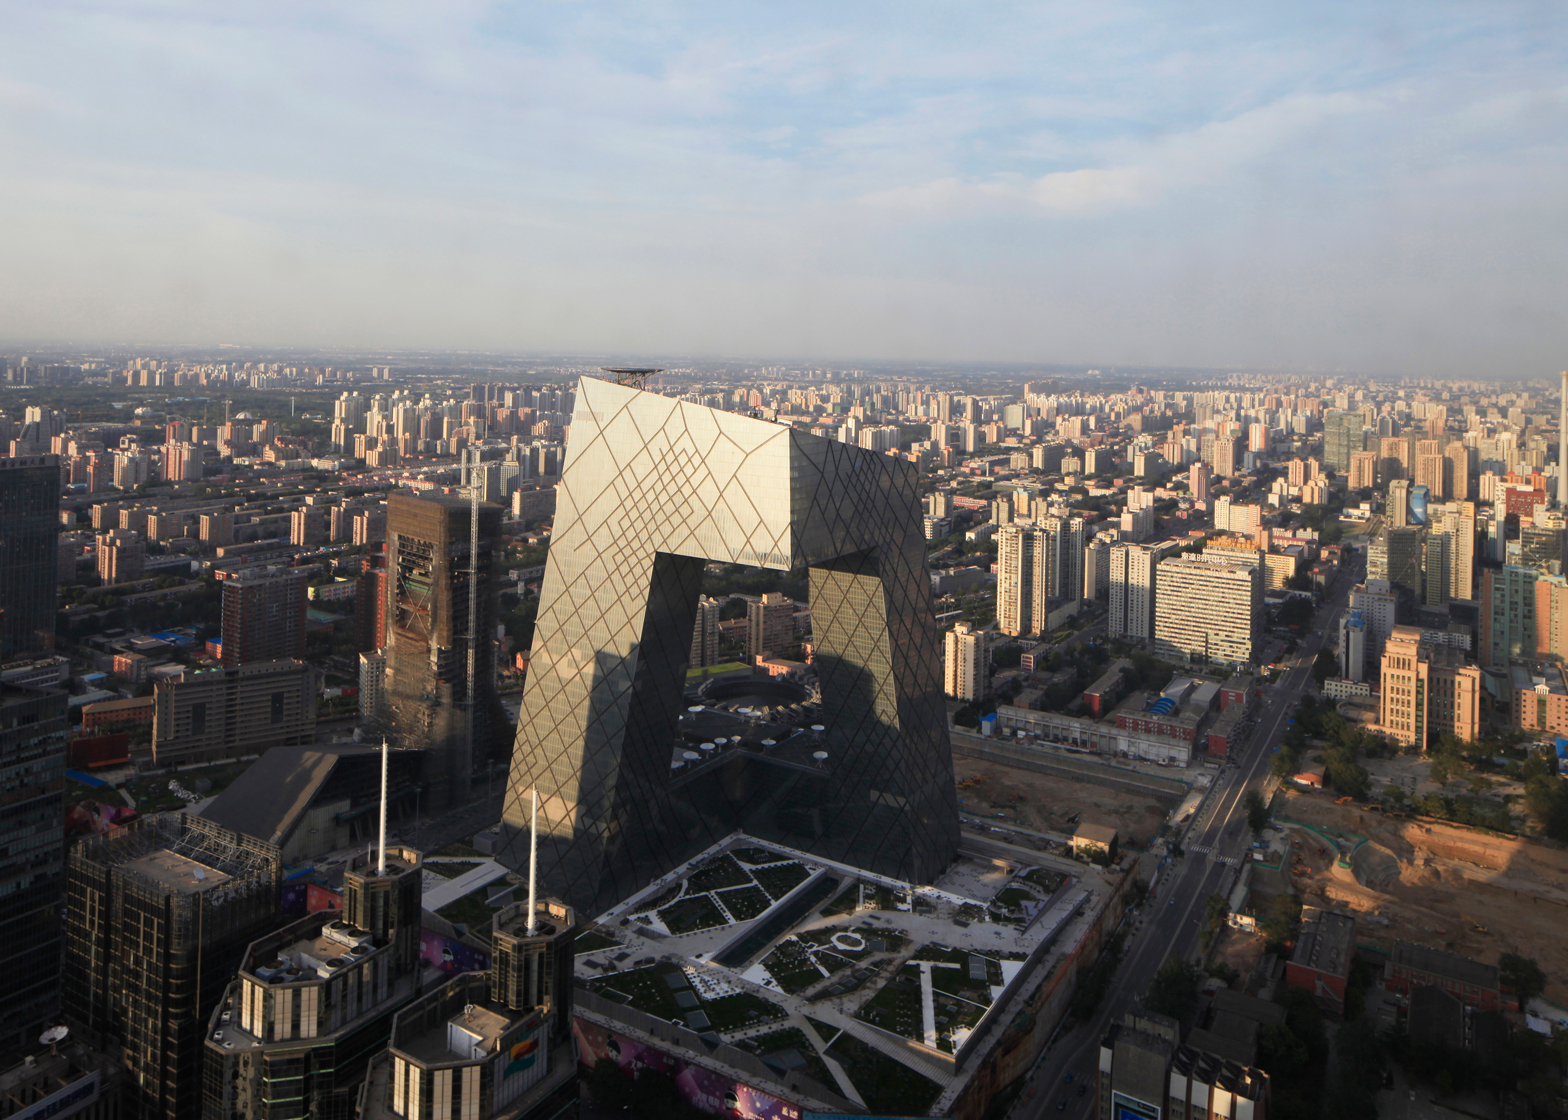 Rem Koolhaas at World Architecture Festival: CCTV Headquarters by OMA